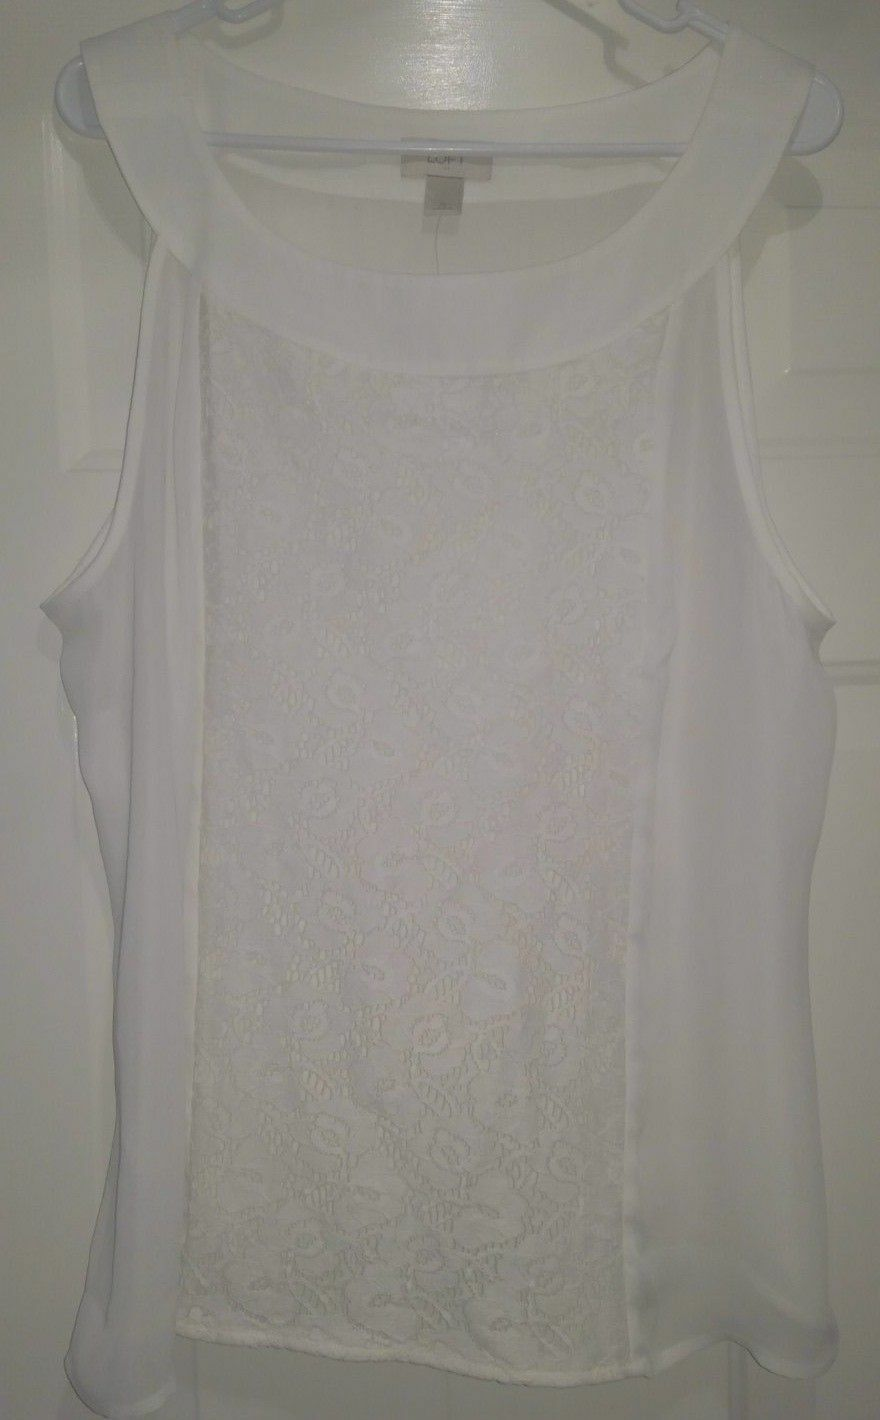 Ann Taylor Loft NWT Womens Off White w  Floral Lace Sleeveless Shirt Top Size XL